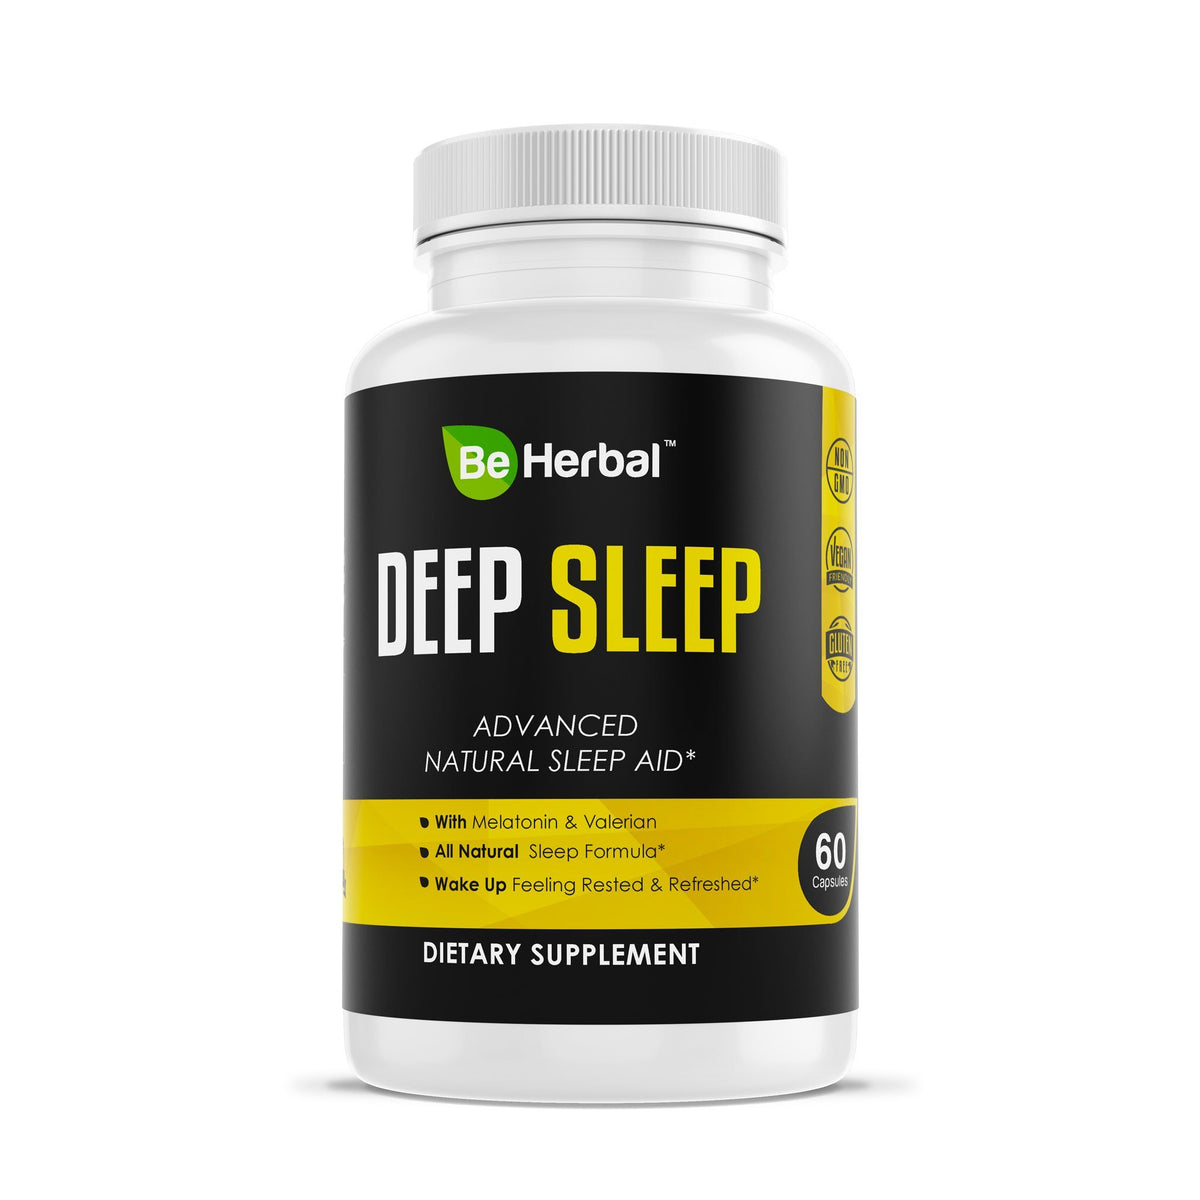 Deep Sleep - Natural Sleep Aid Herbal Supplements Be Herbal®